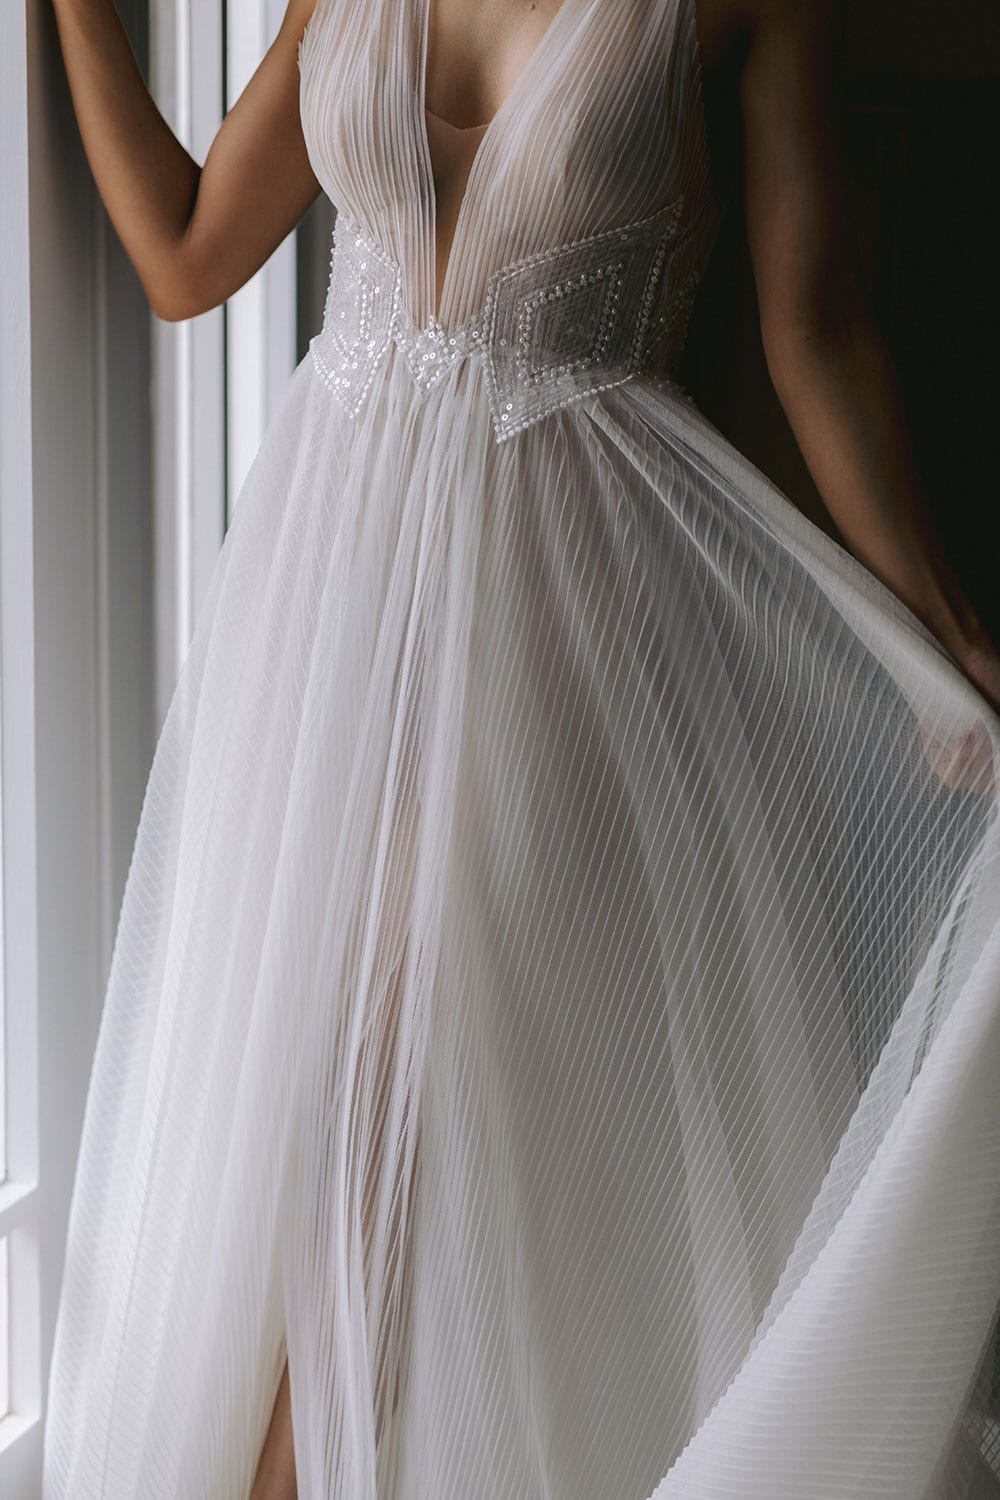 Daytona Wedding gown from Vinka Design - This gown is a true show stopper! Soft pleated tulle wedding dress that cascades into a dramatic train. Tulle or Satin under-skirt accentuates the waist with the perfect combination of hand-beaded sequins and pearls. Model wearing gown next to window, close up detail of skirt.